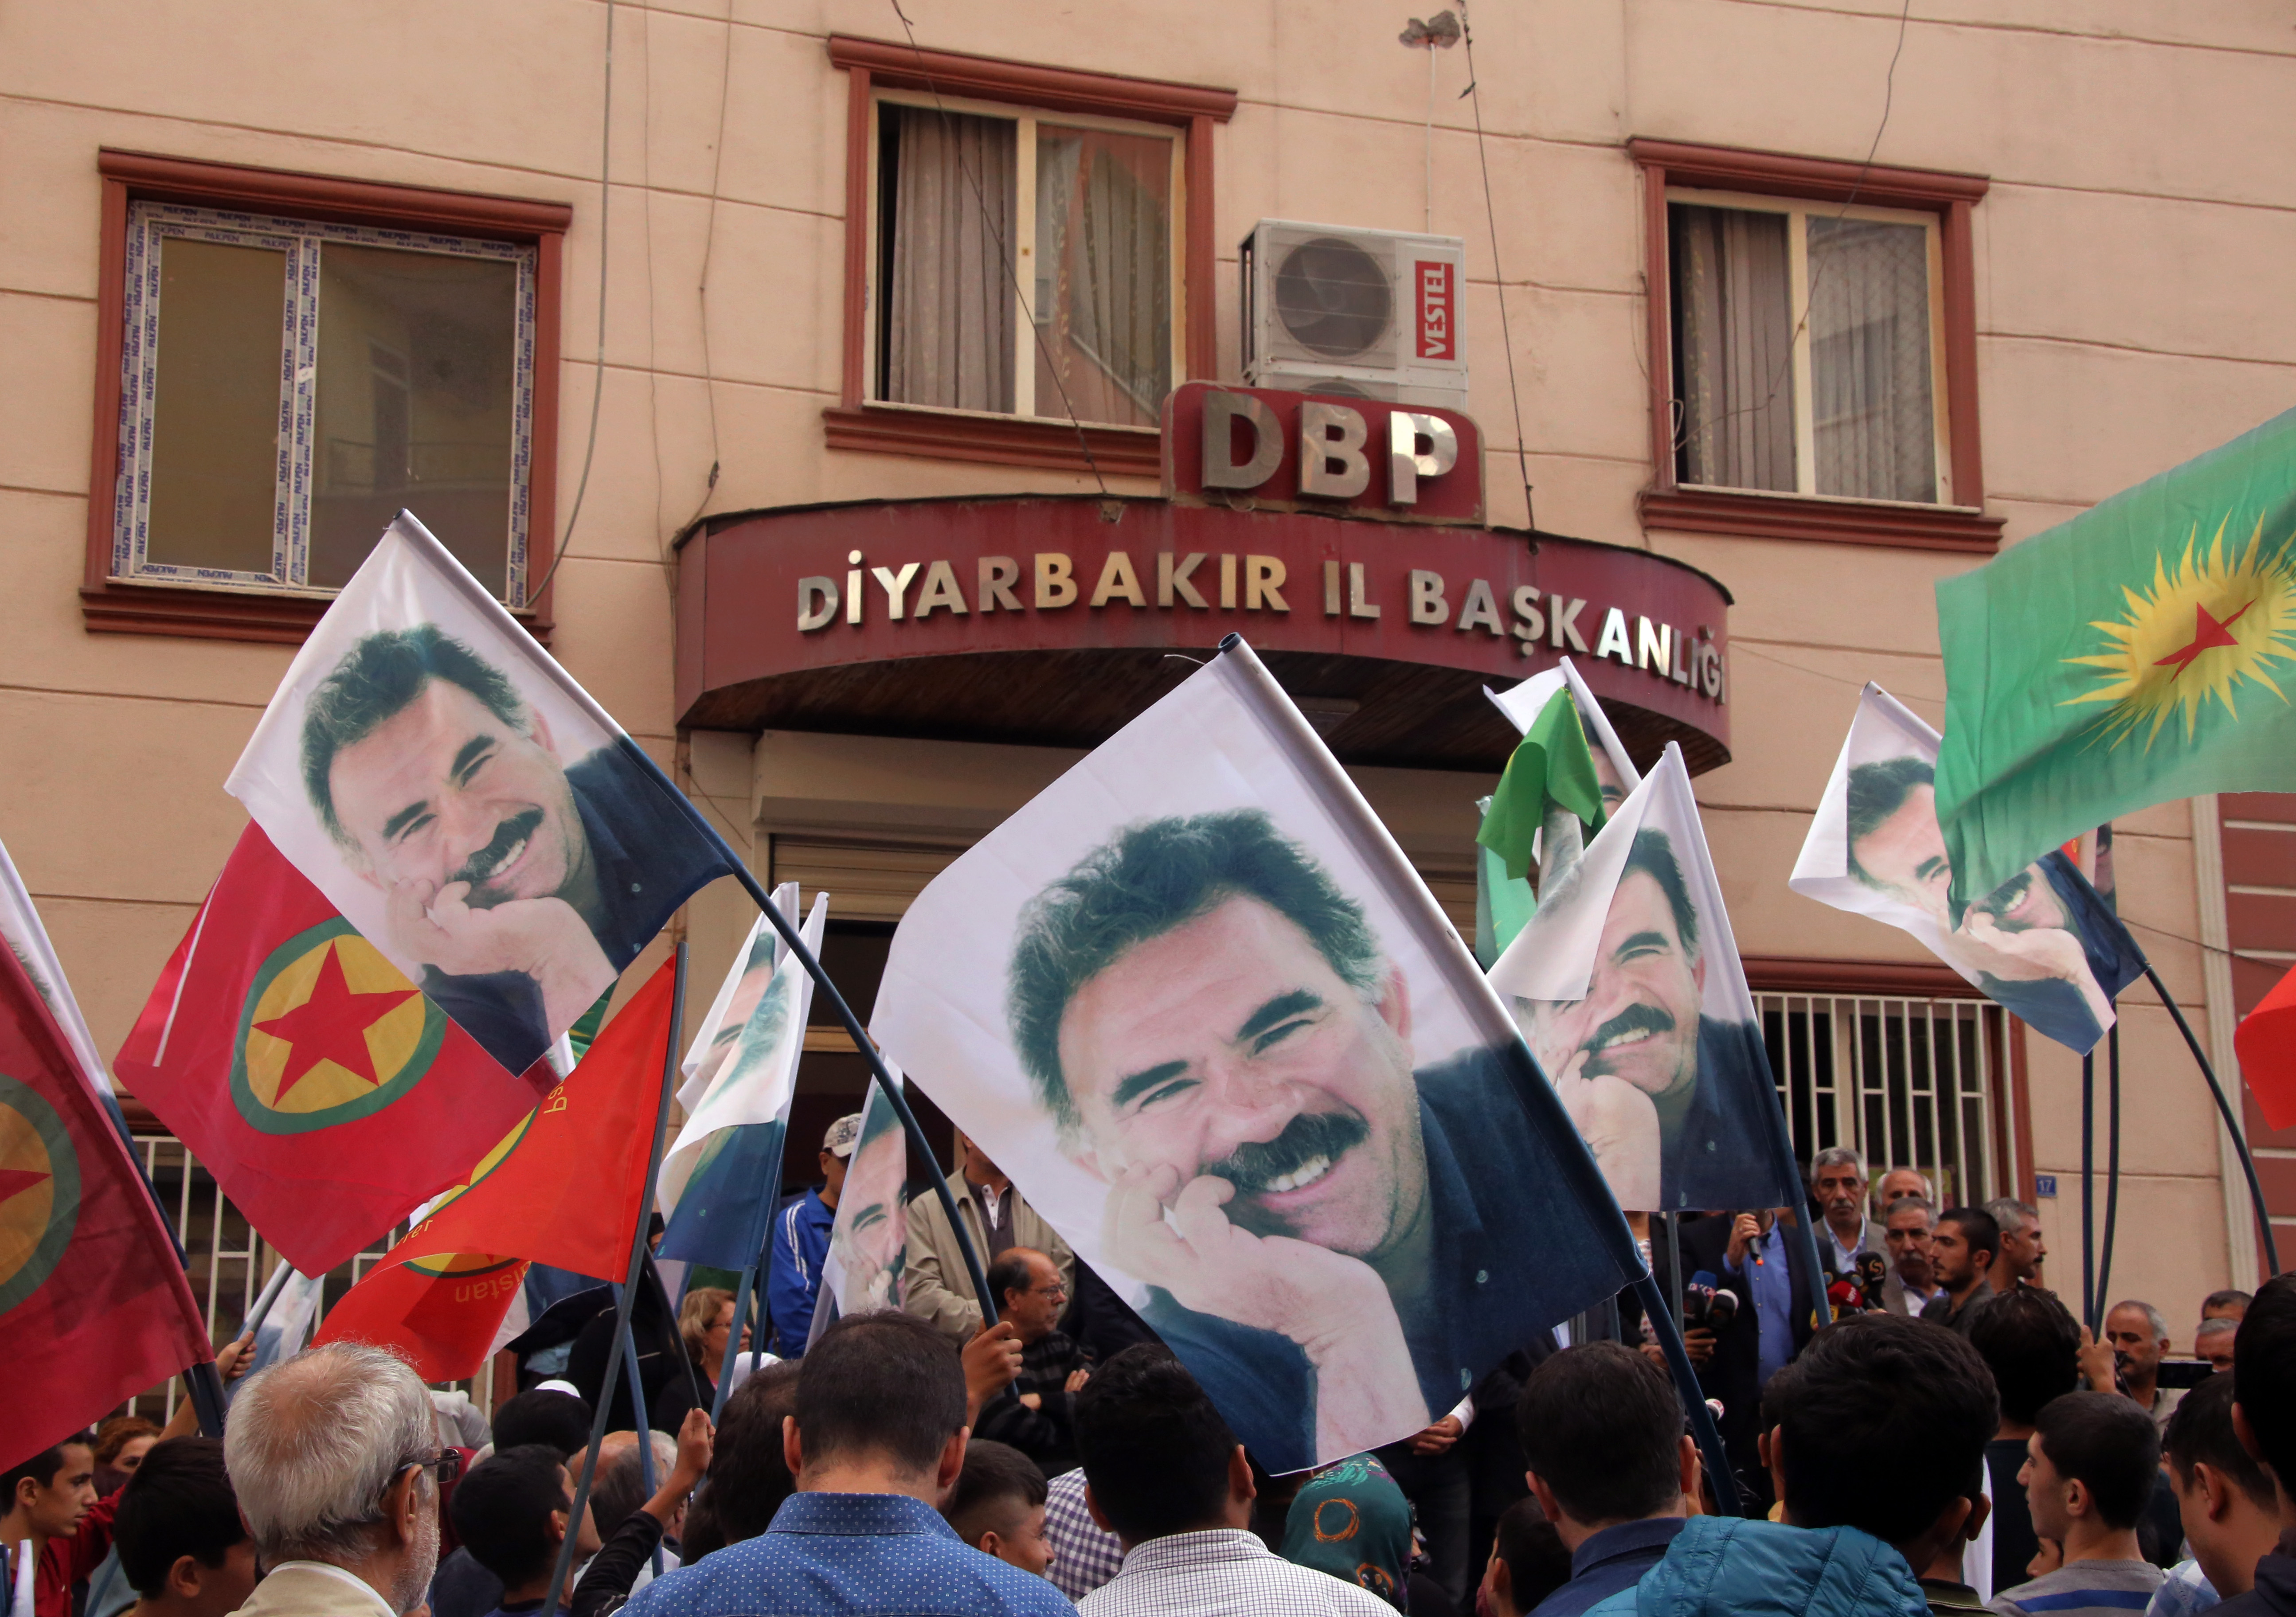 People hold posters of jailed PKK leader Abdullah Ocalan and PKK flags as they gather outside the headquarters of pro-Kurdish Democratic Regions Party, DBP, on the17th anniversary of Ocalan's expulsion from Syria, in Diyarbakir, Turkey, Oct. 9, 201...